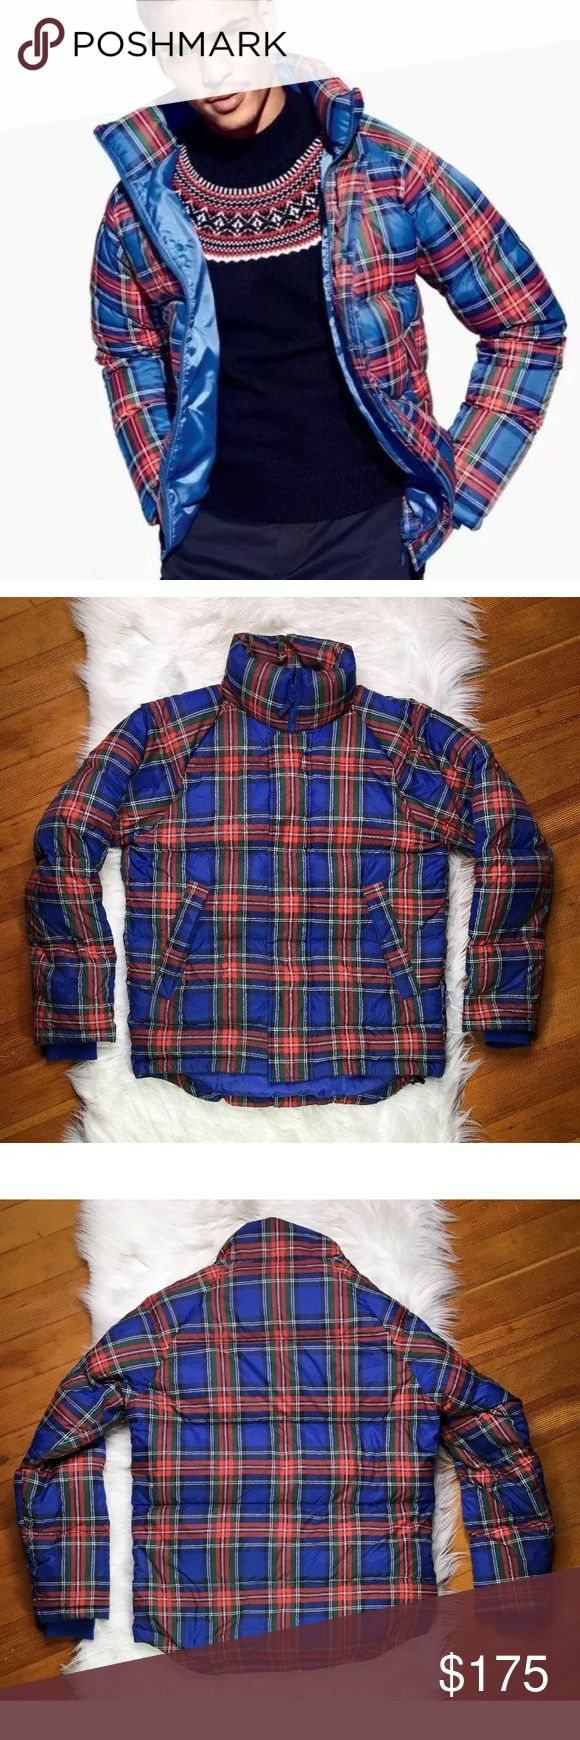 JW Anderson x Uniqlo plaid puffer jacket Puffer jackets